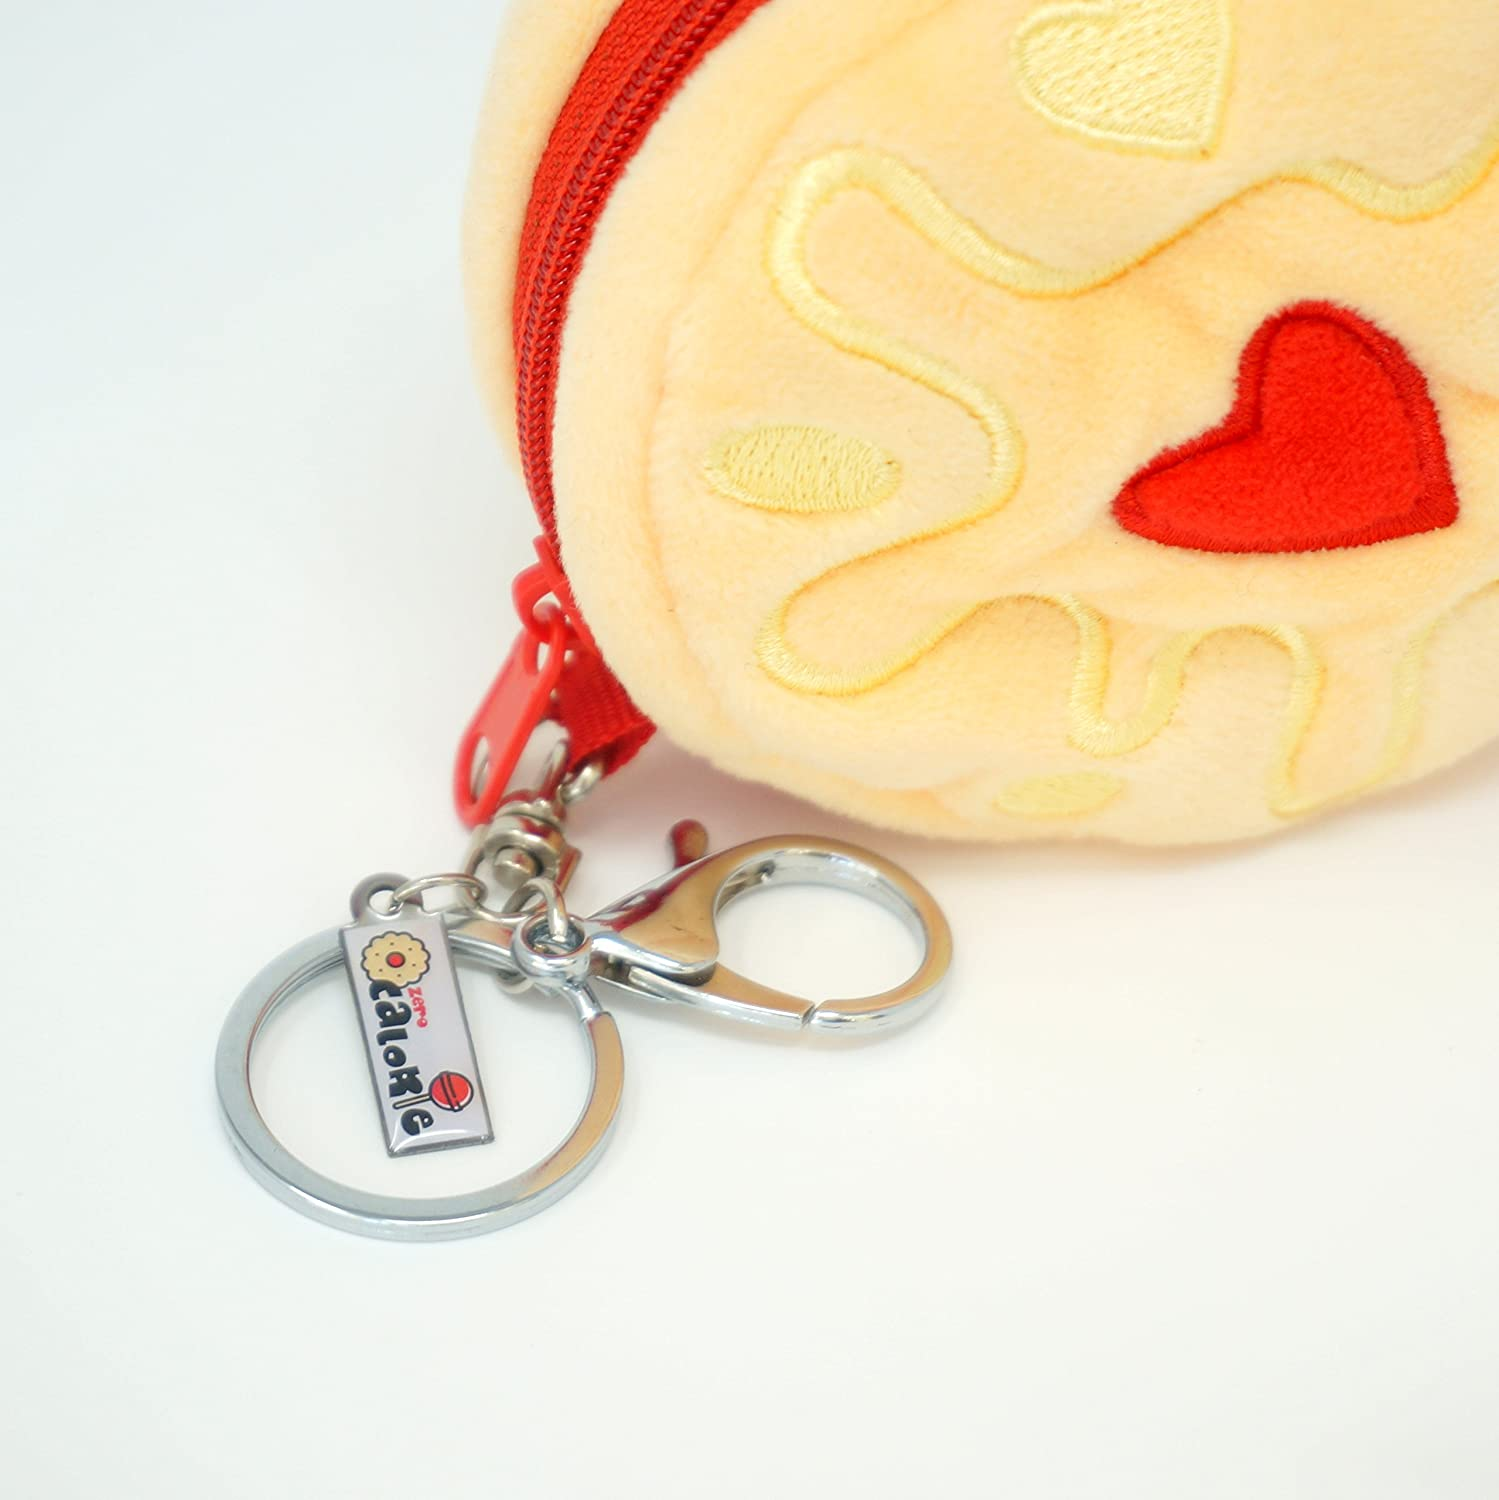 Zero Calorie Jammy Biscuit Coin Purse with Keyring Cute Plush Christmas Valentine Gift Stockings Filler